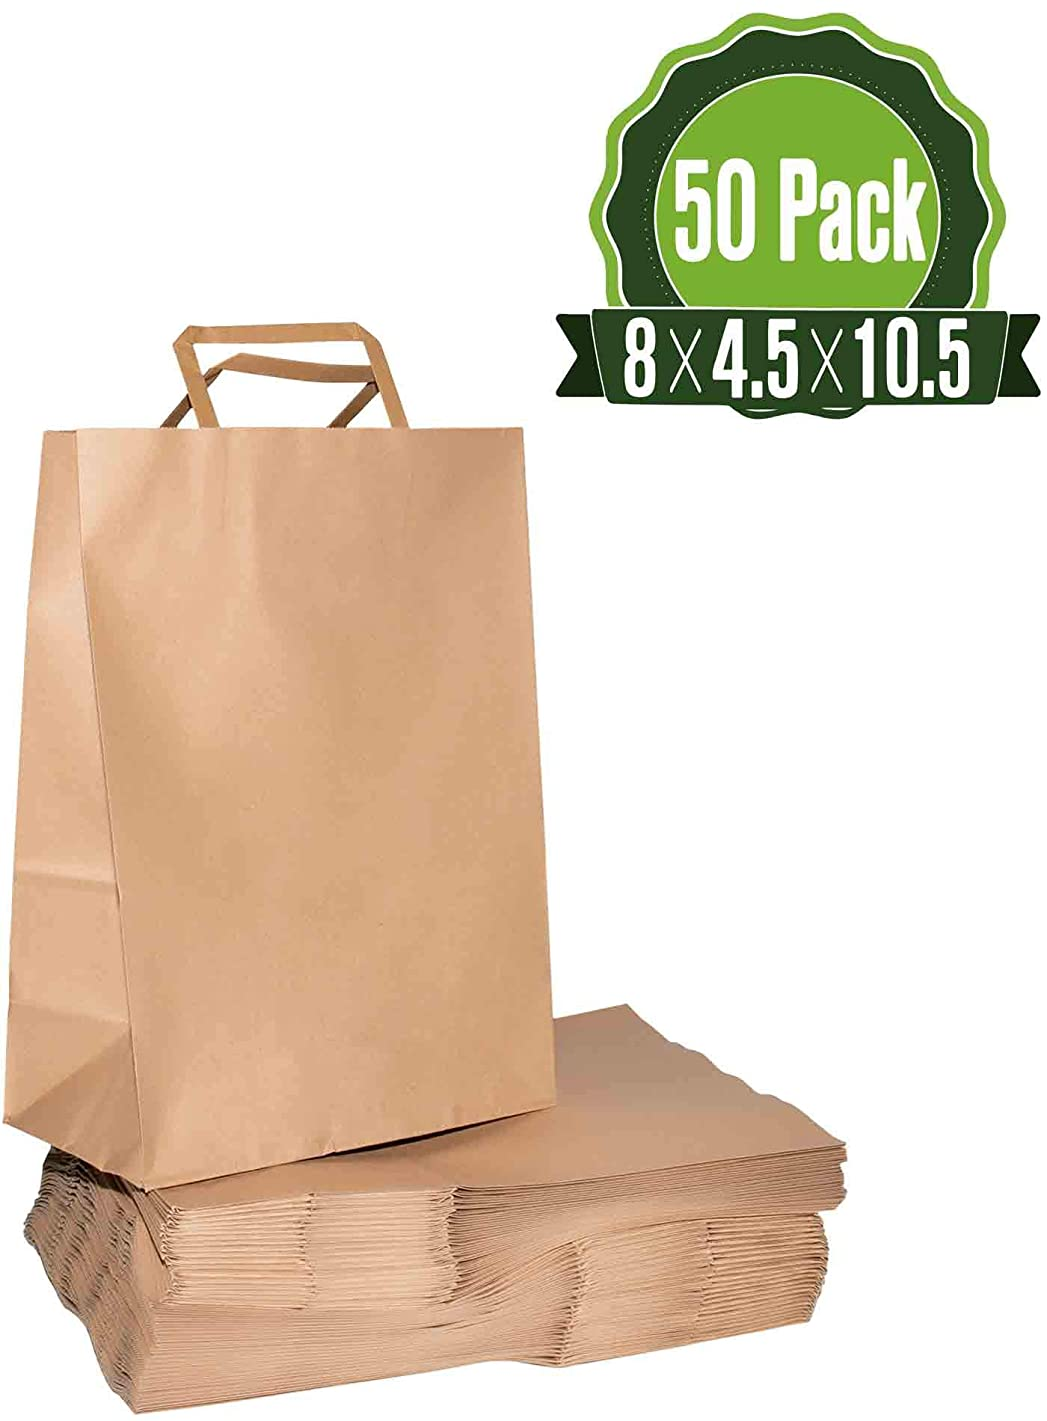 Kraft Paper Gift Bags Bulk with Handles 50Pc [ Ideal for Shopping, Packaging, Retail, Party, Craft, Gifts, Wedding, Recycled, Business, Goody and Merchandise Bag]